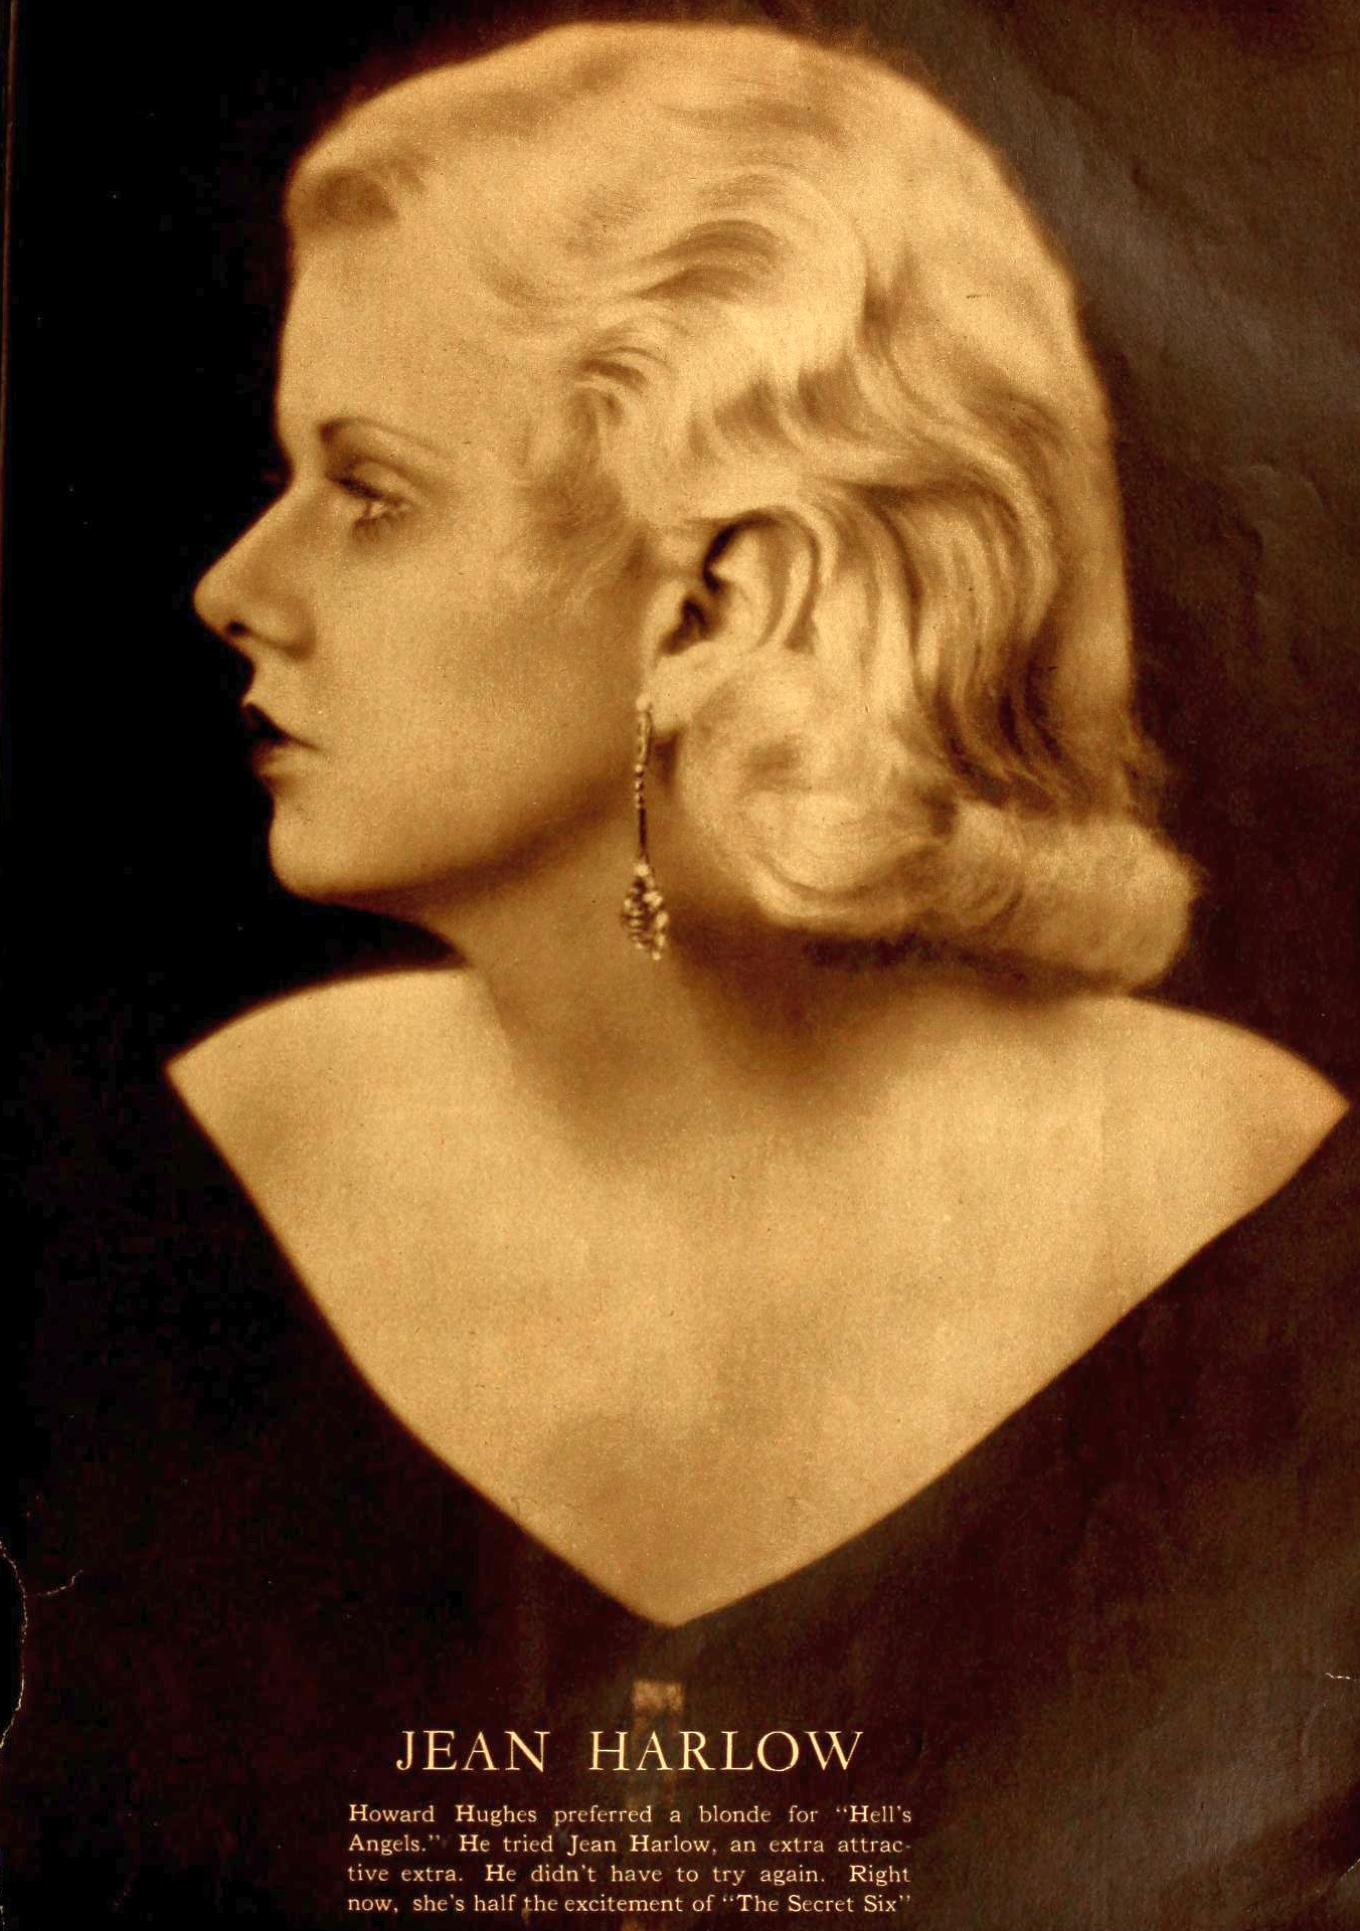 jean harlow motion picture march 1931a